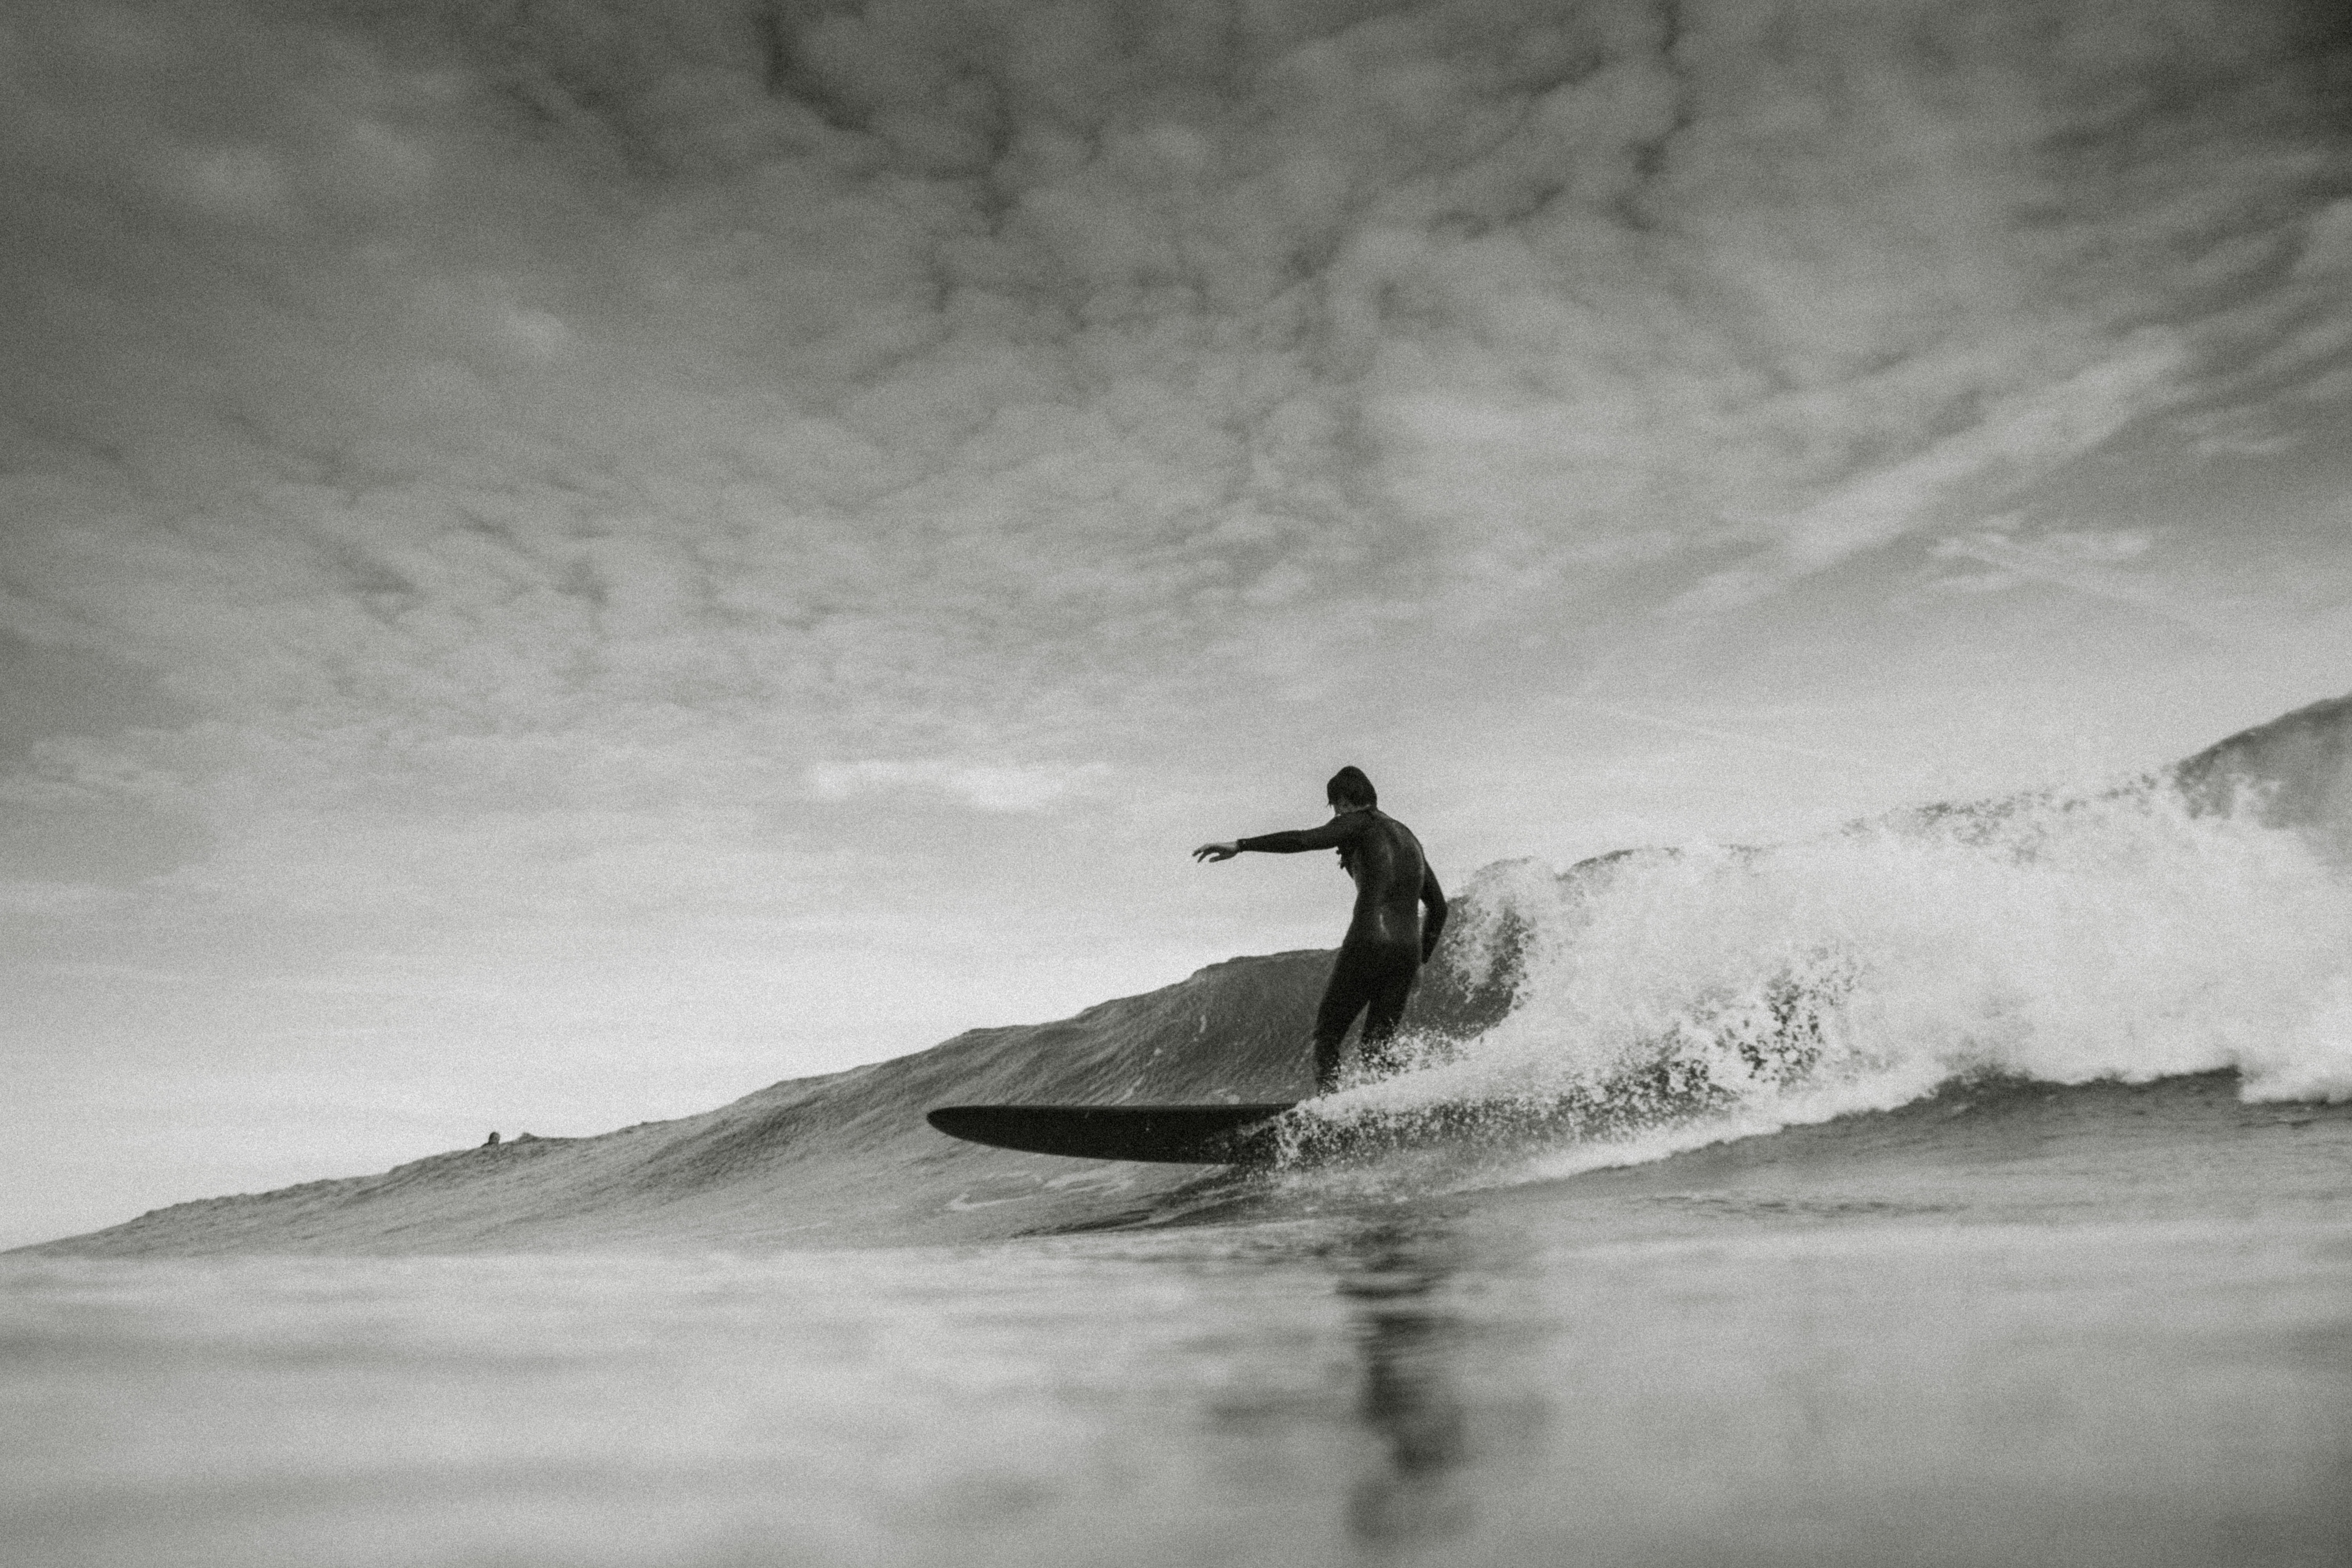 grayscale photo of person surfing under cloudy sky